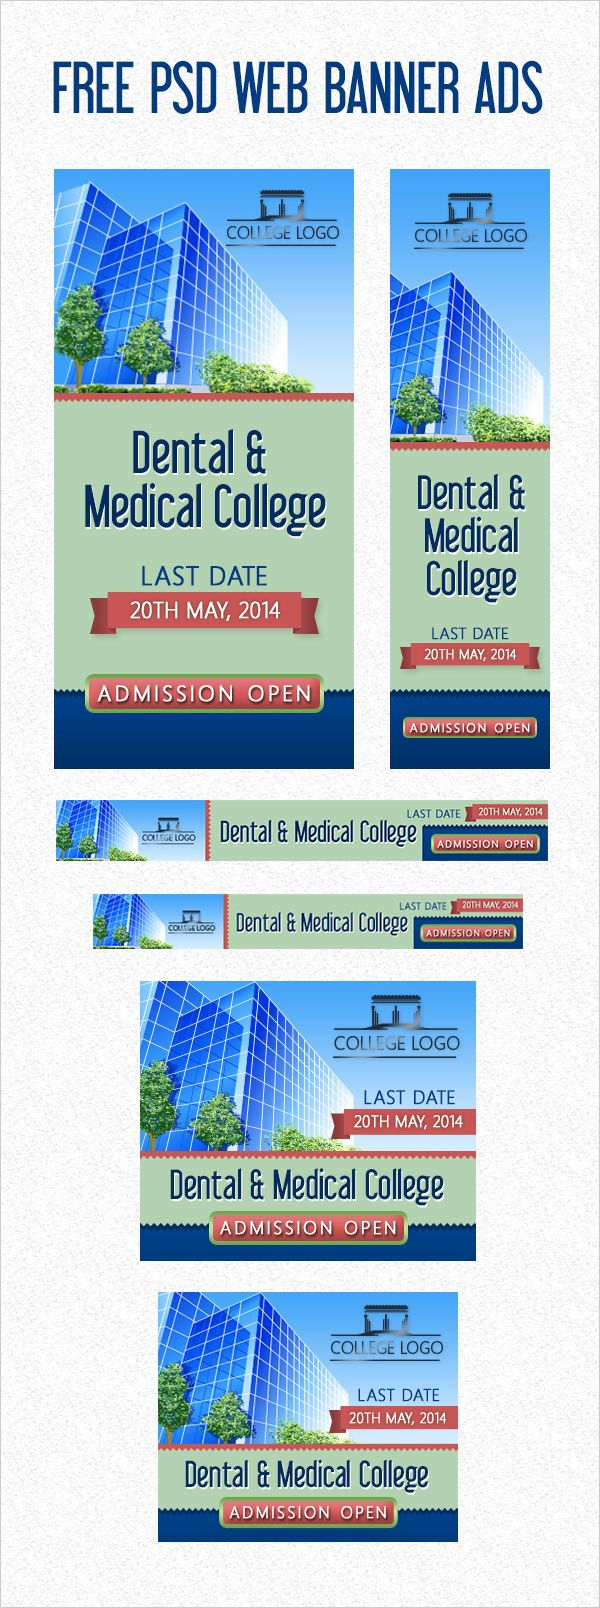 Free PSD Web Banner Ads1 Free PSD College/University Web Banner ...